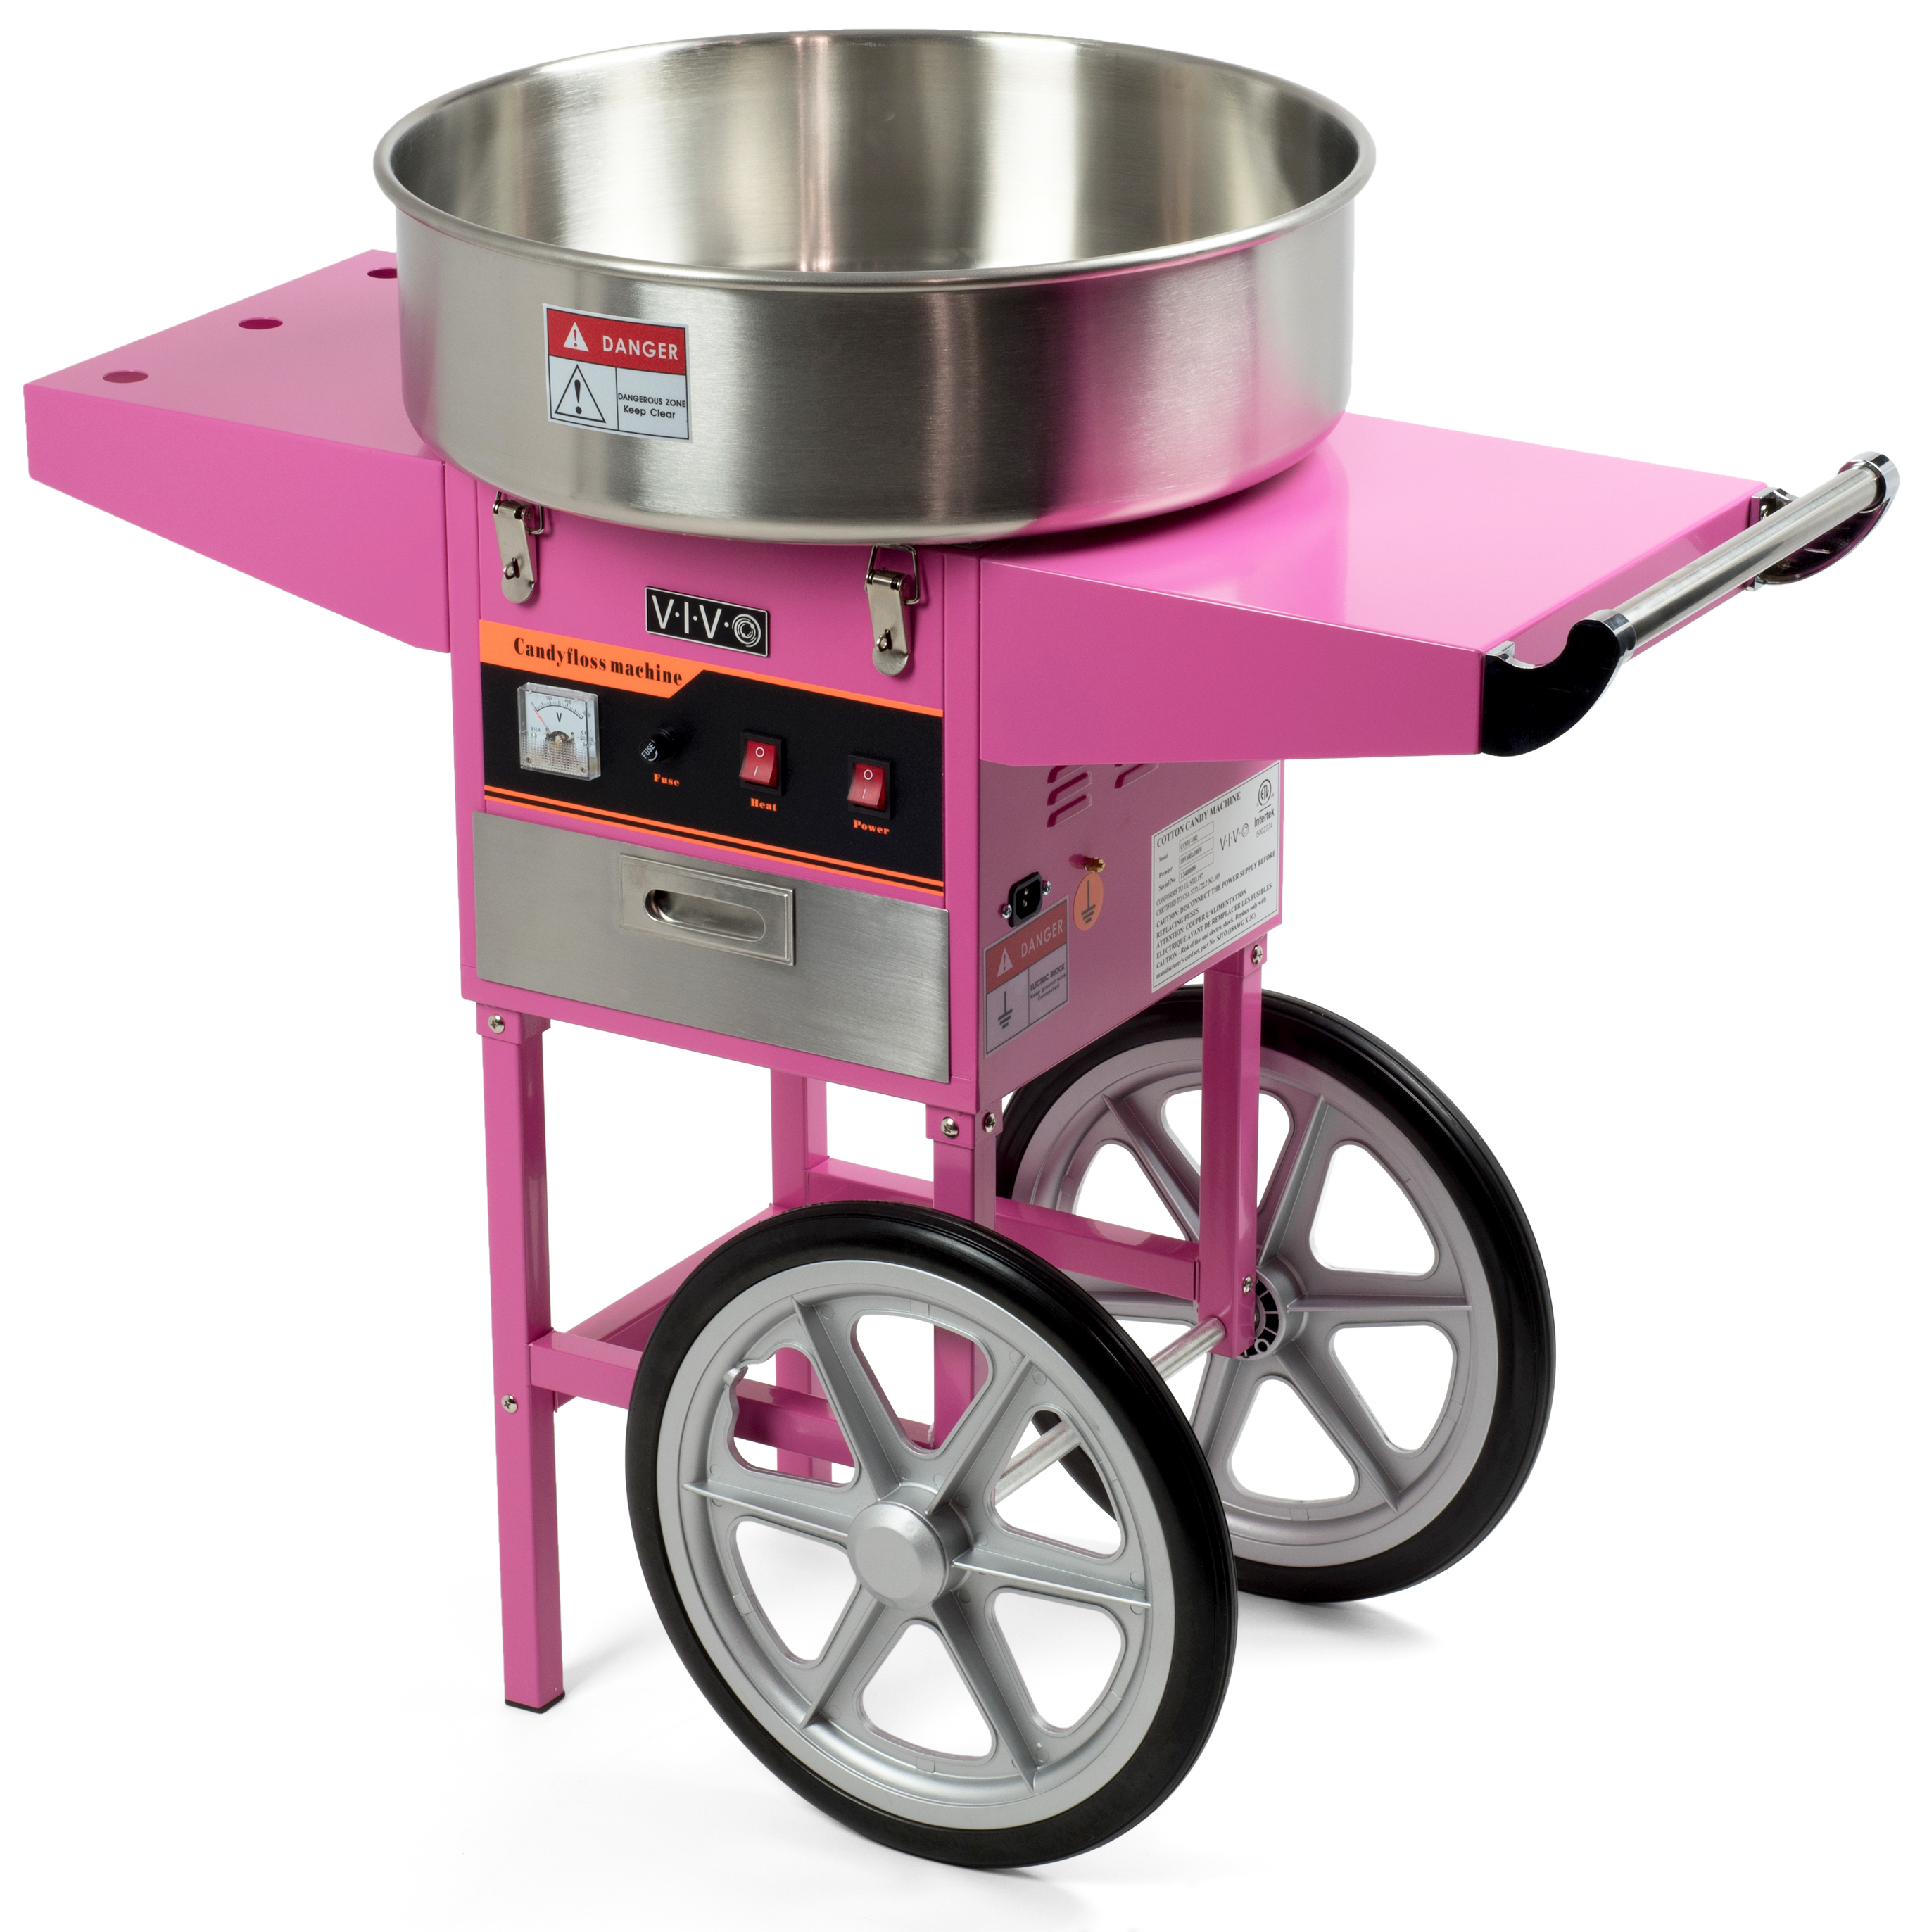 Electric Commercial Cotton Candy Machine / Floss Maker Pink Cart Stand VIVO